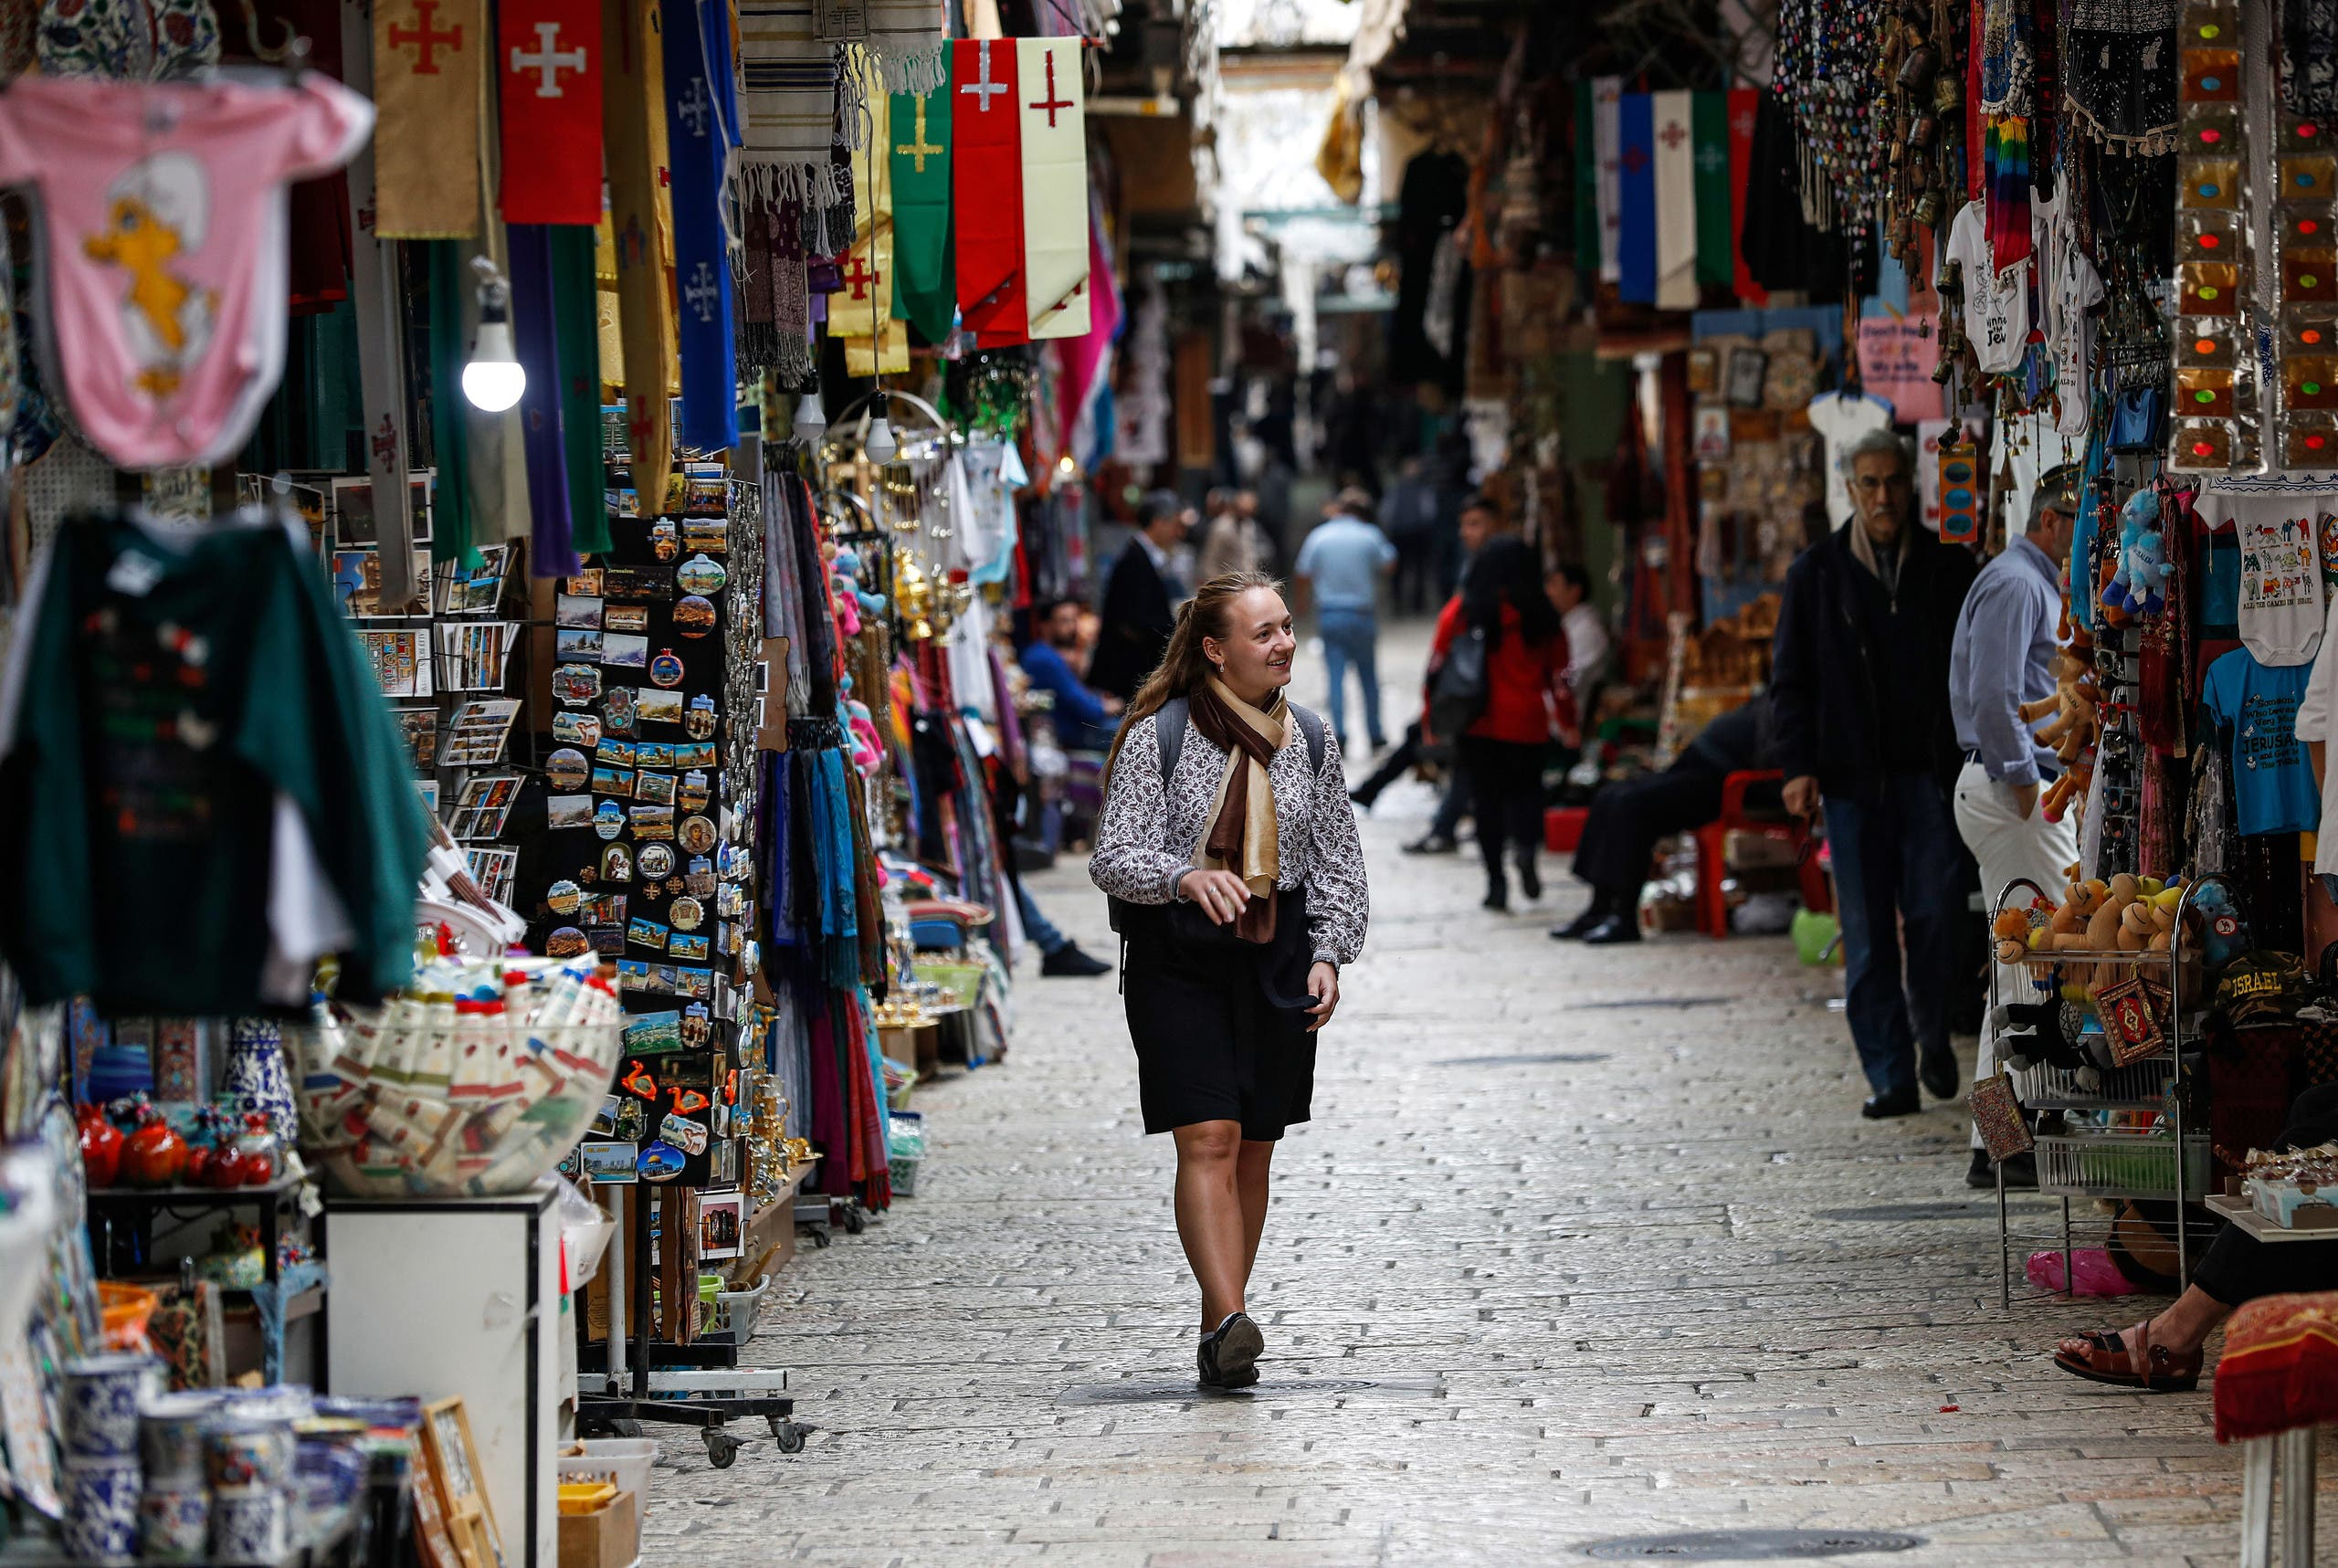 A lone tourist makes her way along a market street in the nearly deserted Old City of Jerusalem on March 12, 2020. (AFP)